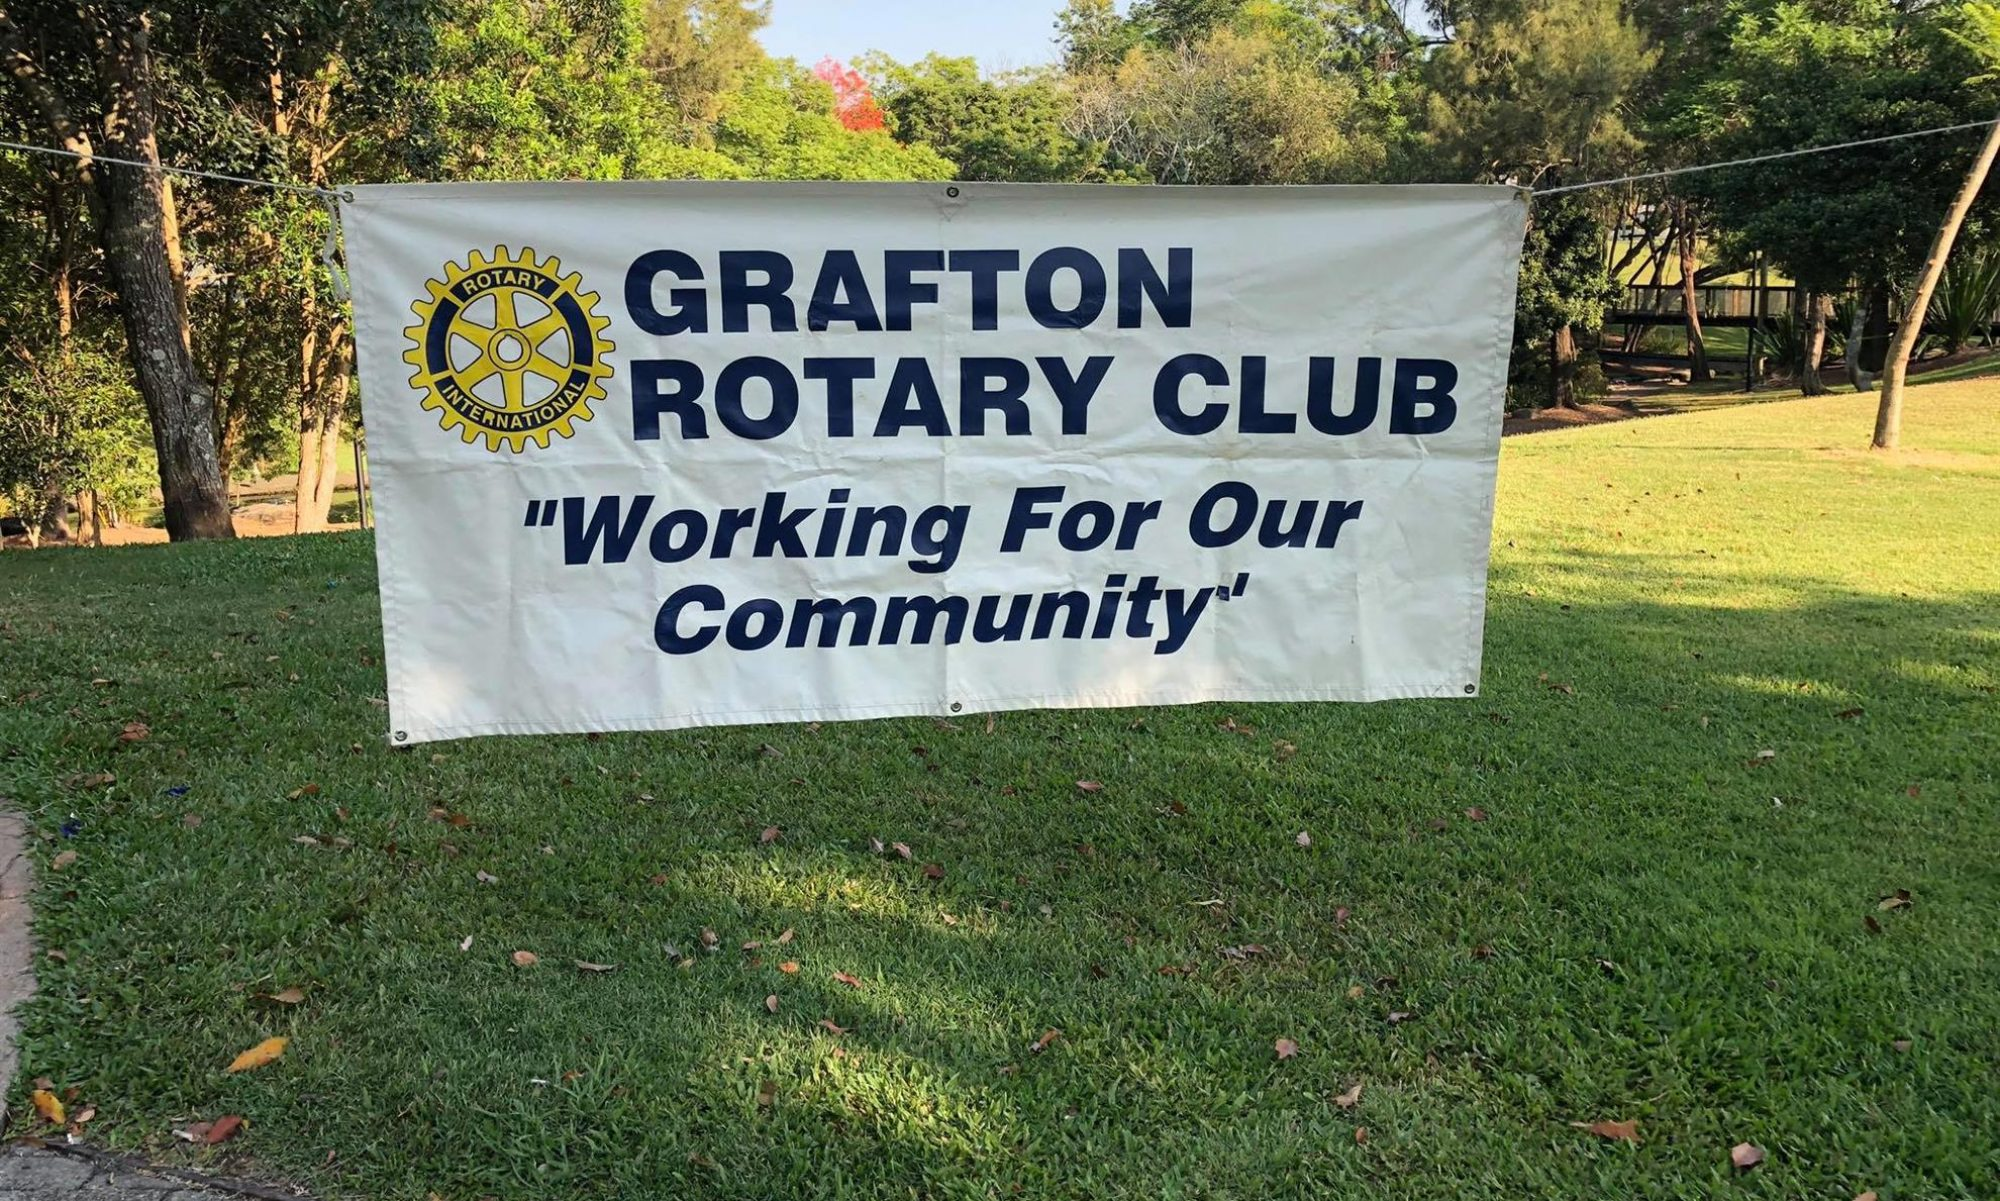 Grafton Rotary Club